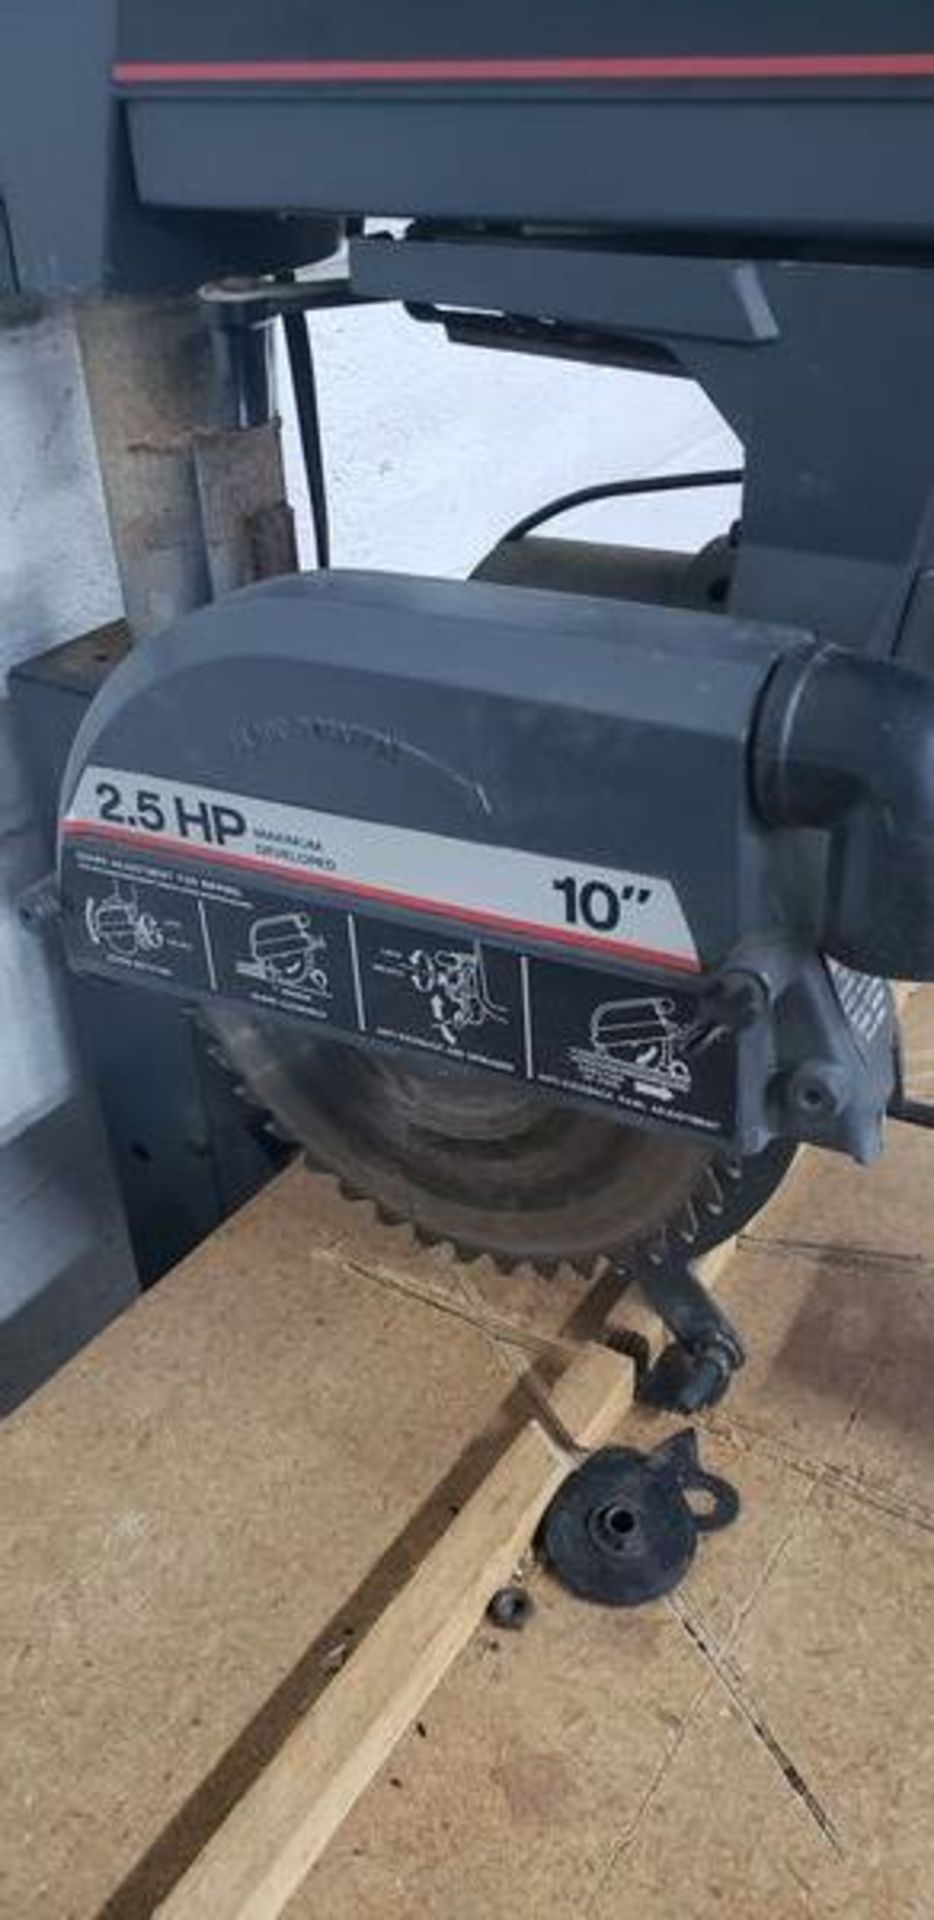 """CRAFTSMAN 10"""" ELECTRIC RADIAL SAW WITH BASE - Image 2 of 3"""